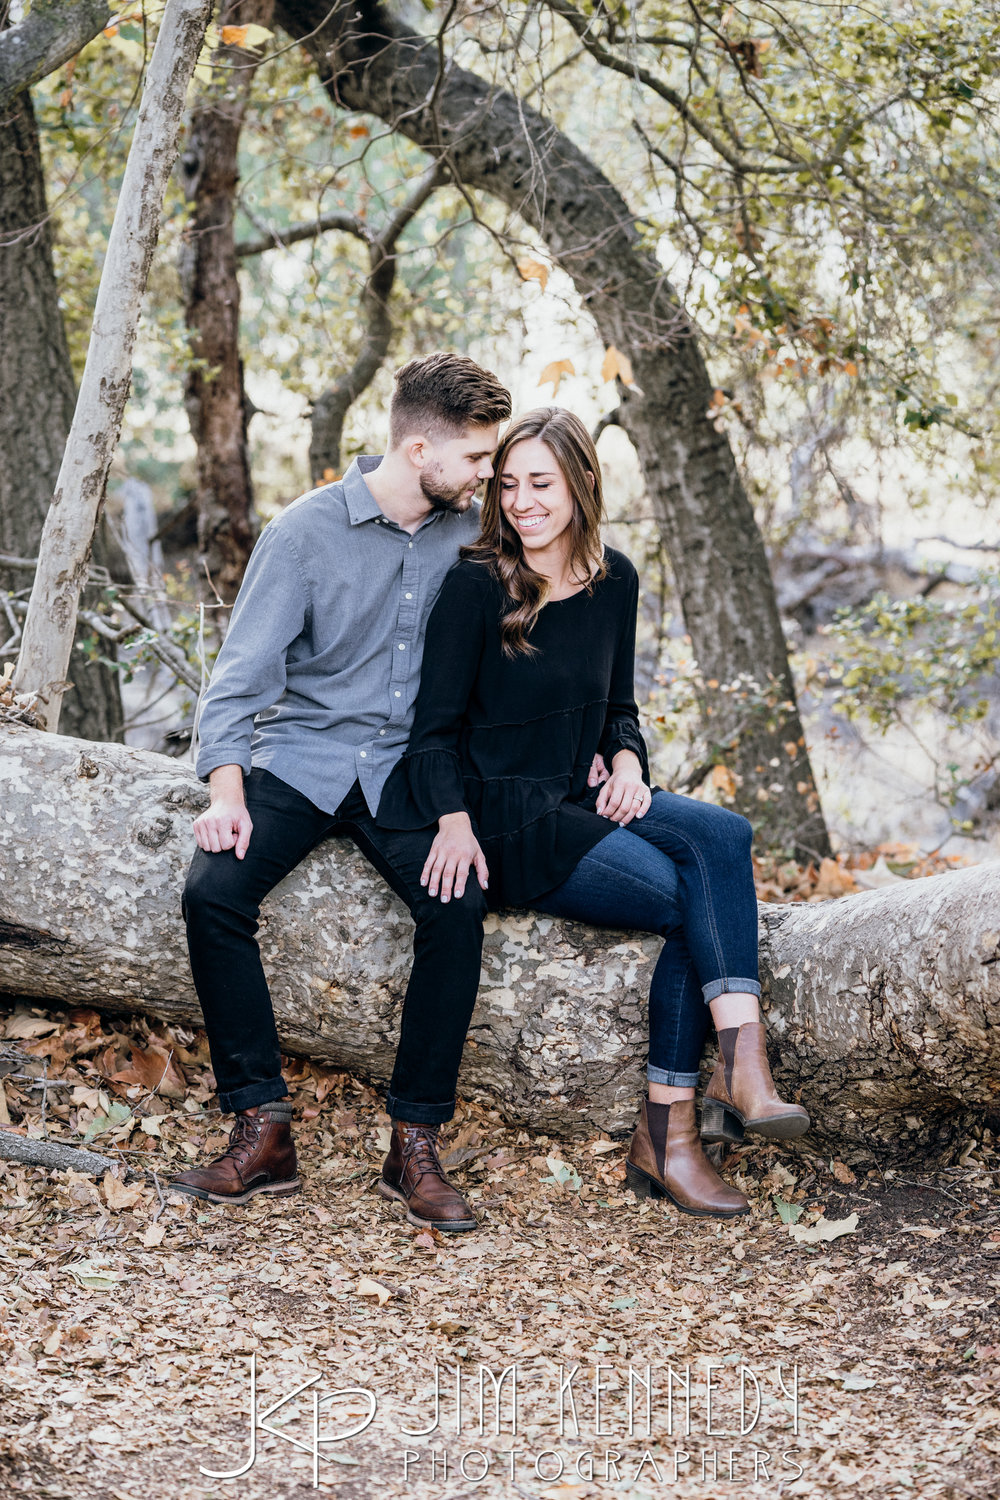 thomas-f-riley-wilderness-park-engagement-session-Leah-tyler_0011.JPG